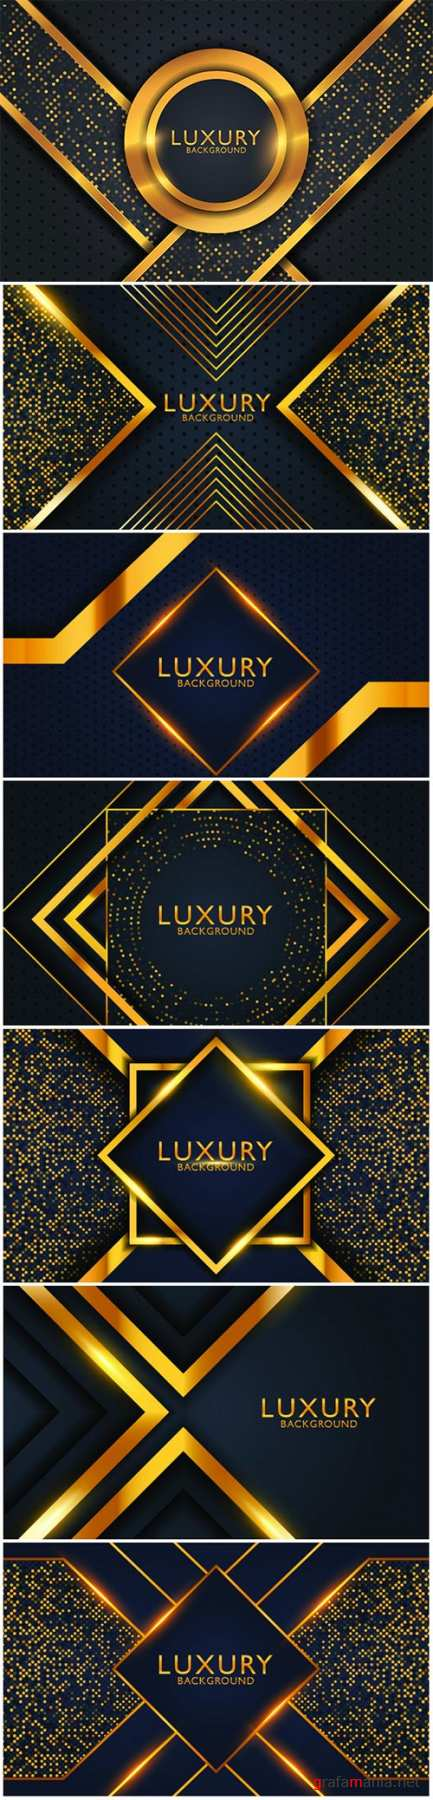 Geometric luxury gold metal background. Graphic design element for invitation, cover